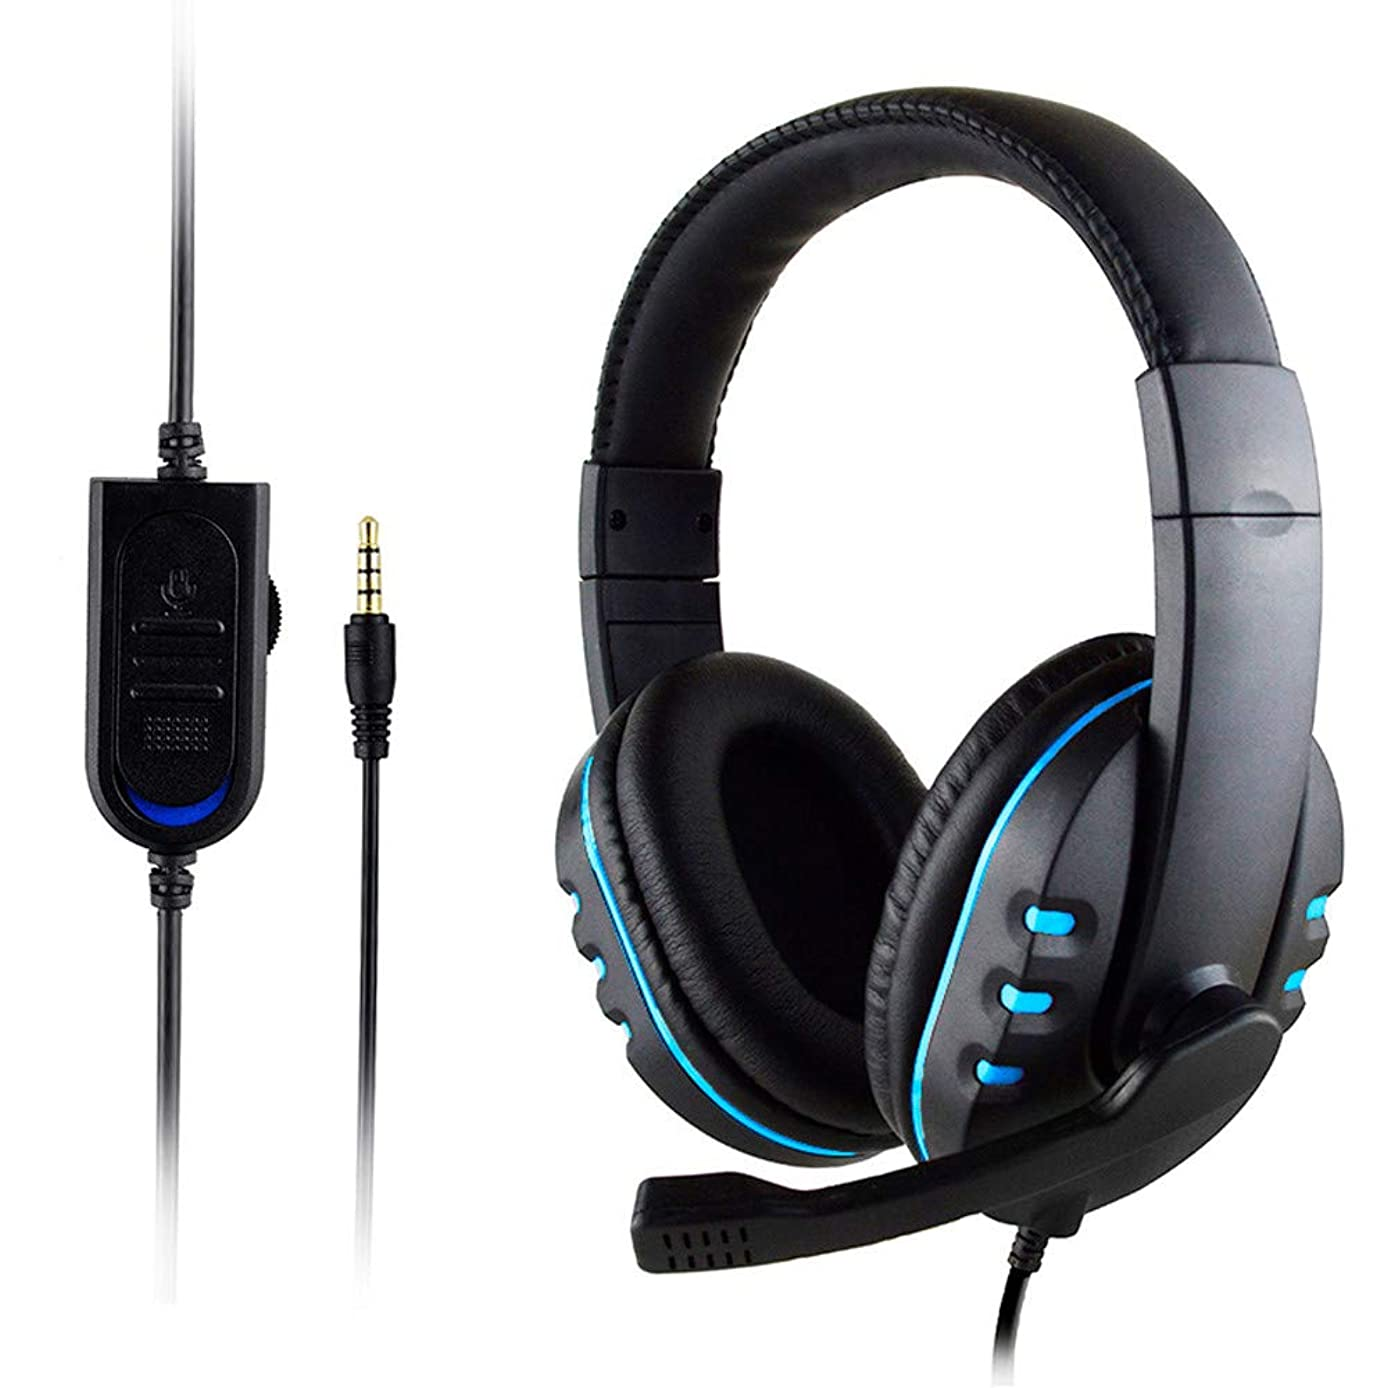 Cocal (2019 New) Wired Gaming Headset Voice Control HI-FI Sound Quality Soft Memory Earmuffs for PS4 Nintendo Switch Games Laptop